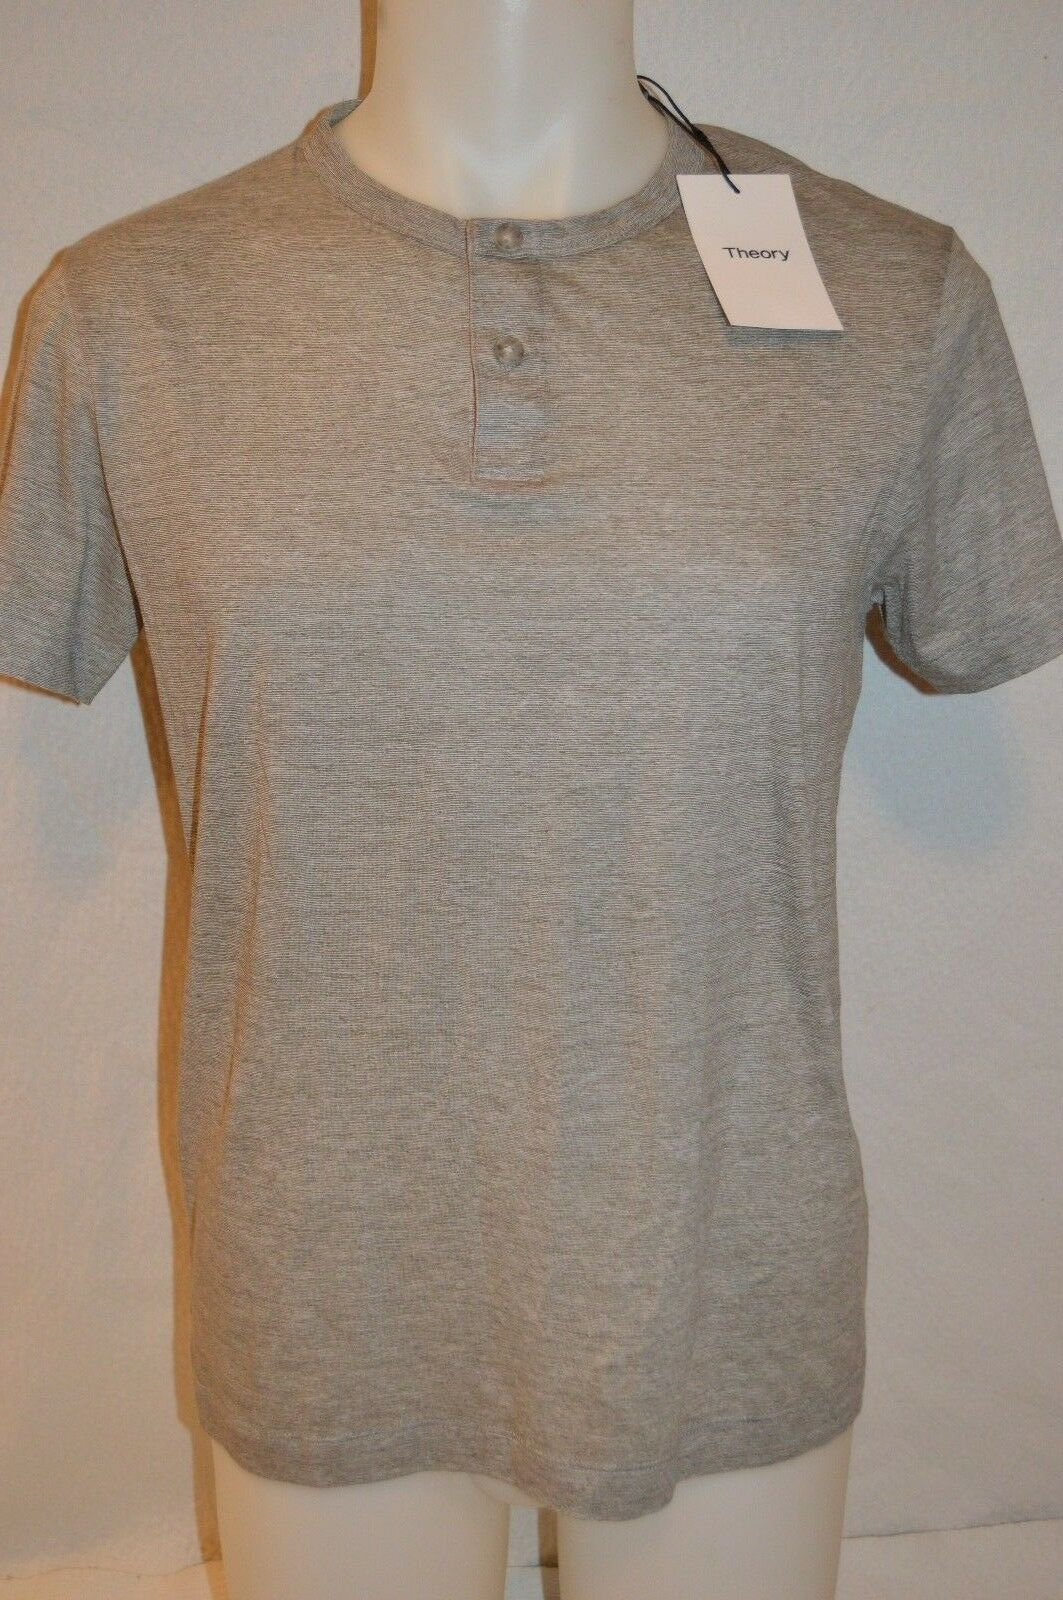 THEORY Man's GASKELL Button Up T-Shirt  NEW  Größe Small  Retail 95